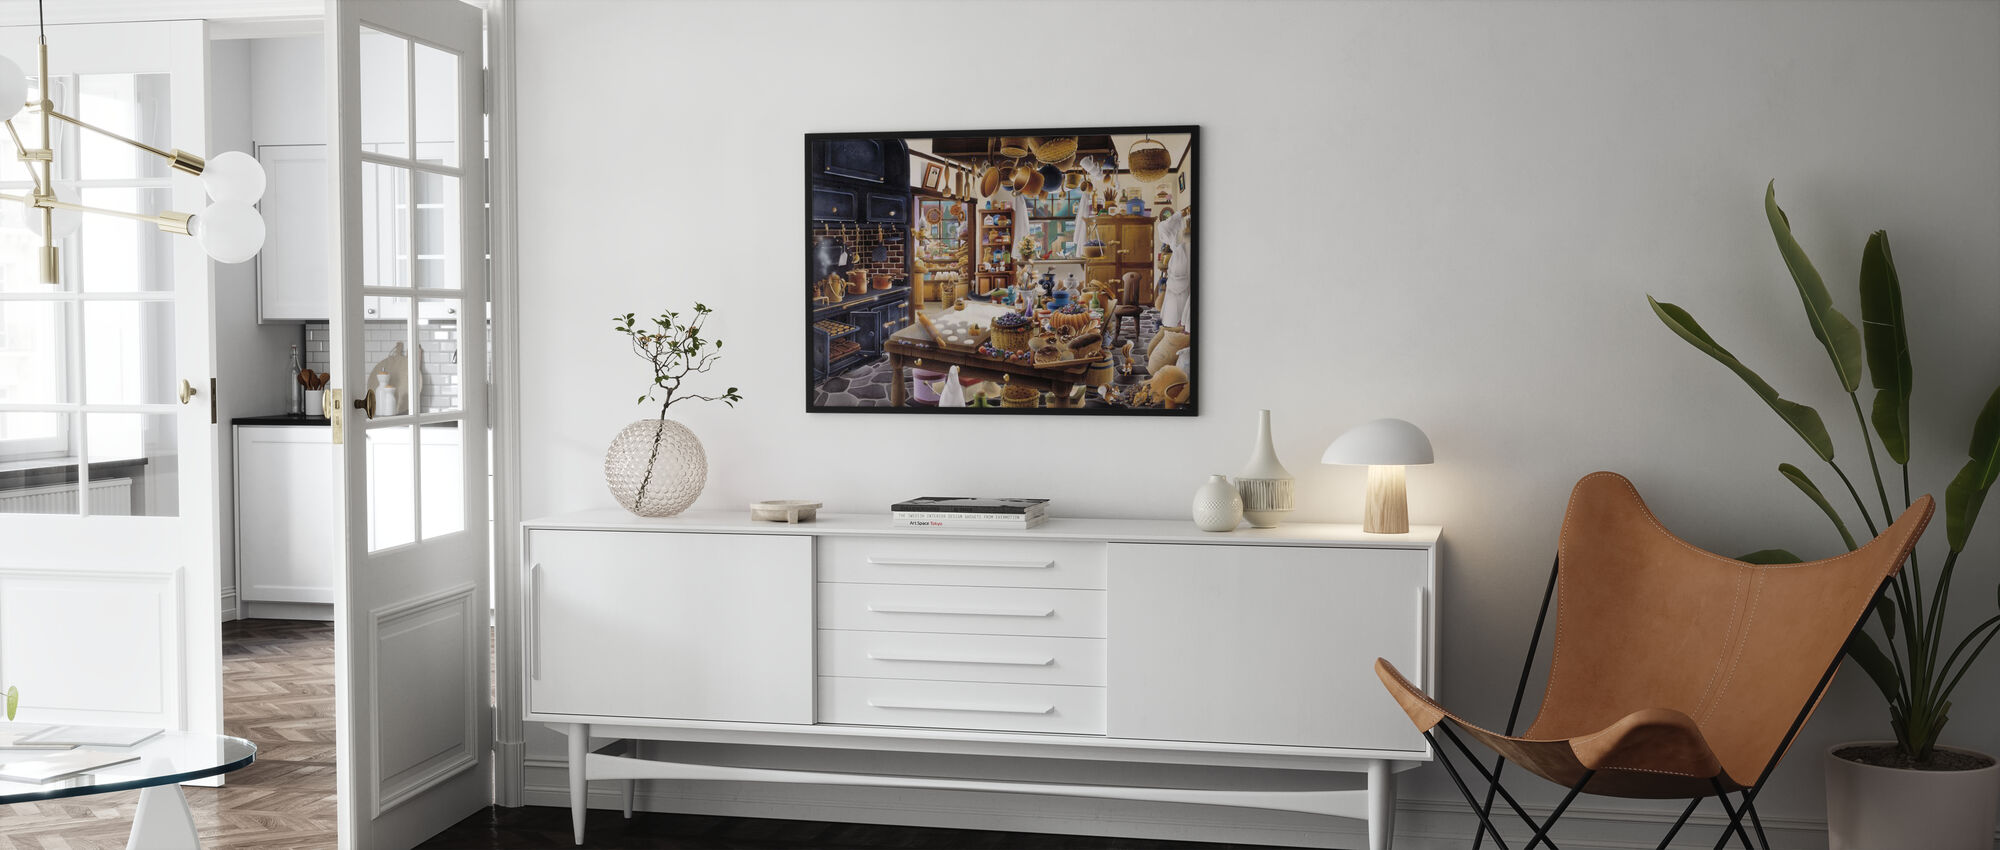 The Bakery - Poster - Living Room